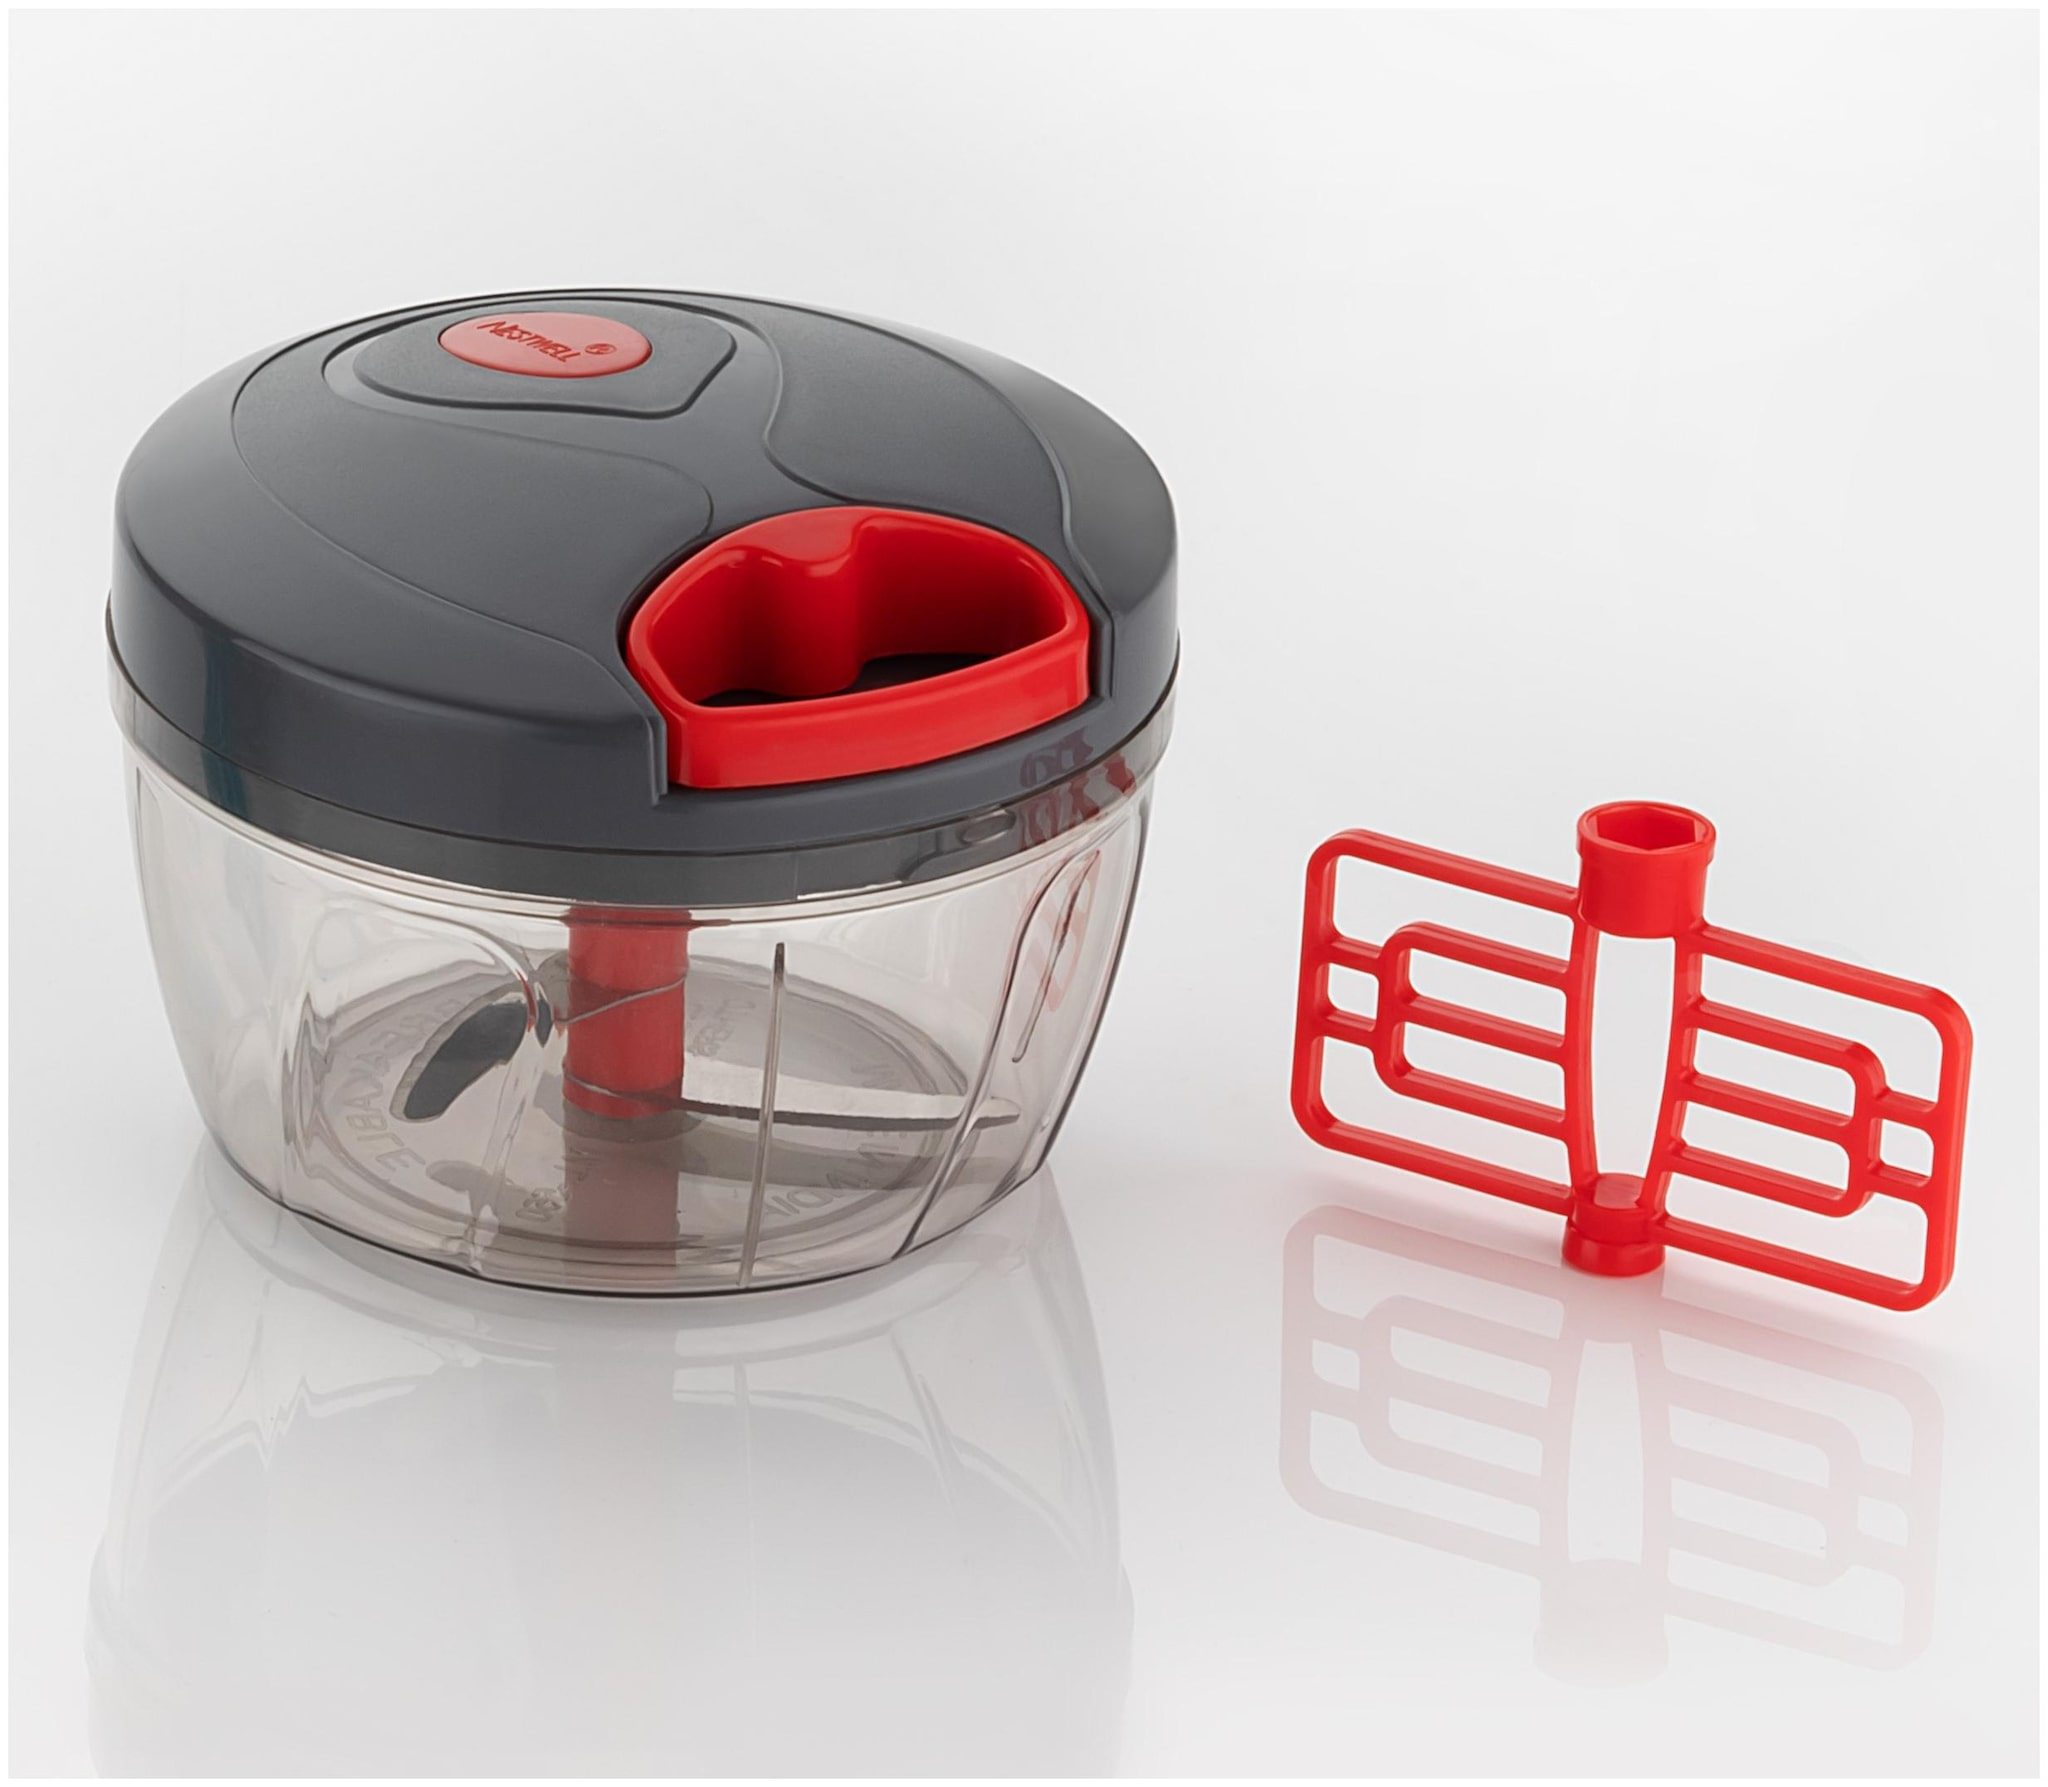 ew 2 in 1 Handy Chopper, Vegetable Cutter and Chilly Cutter, 3...